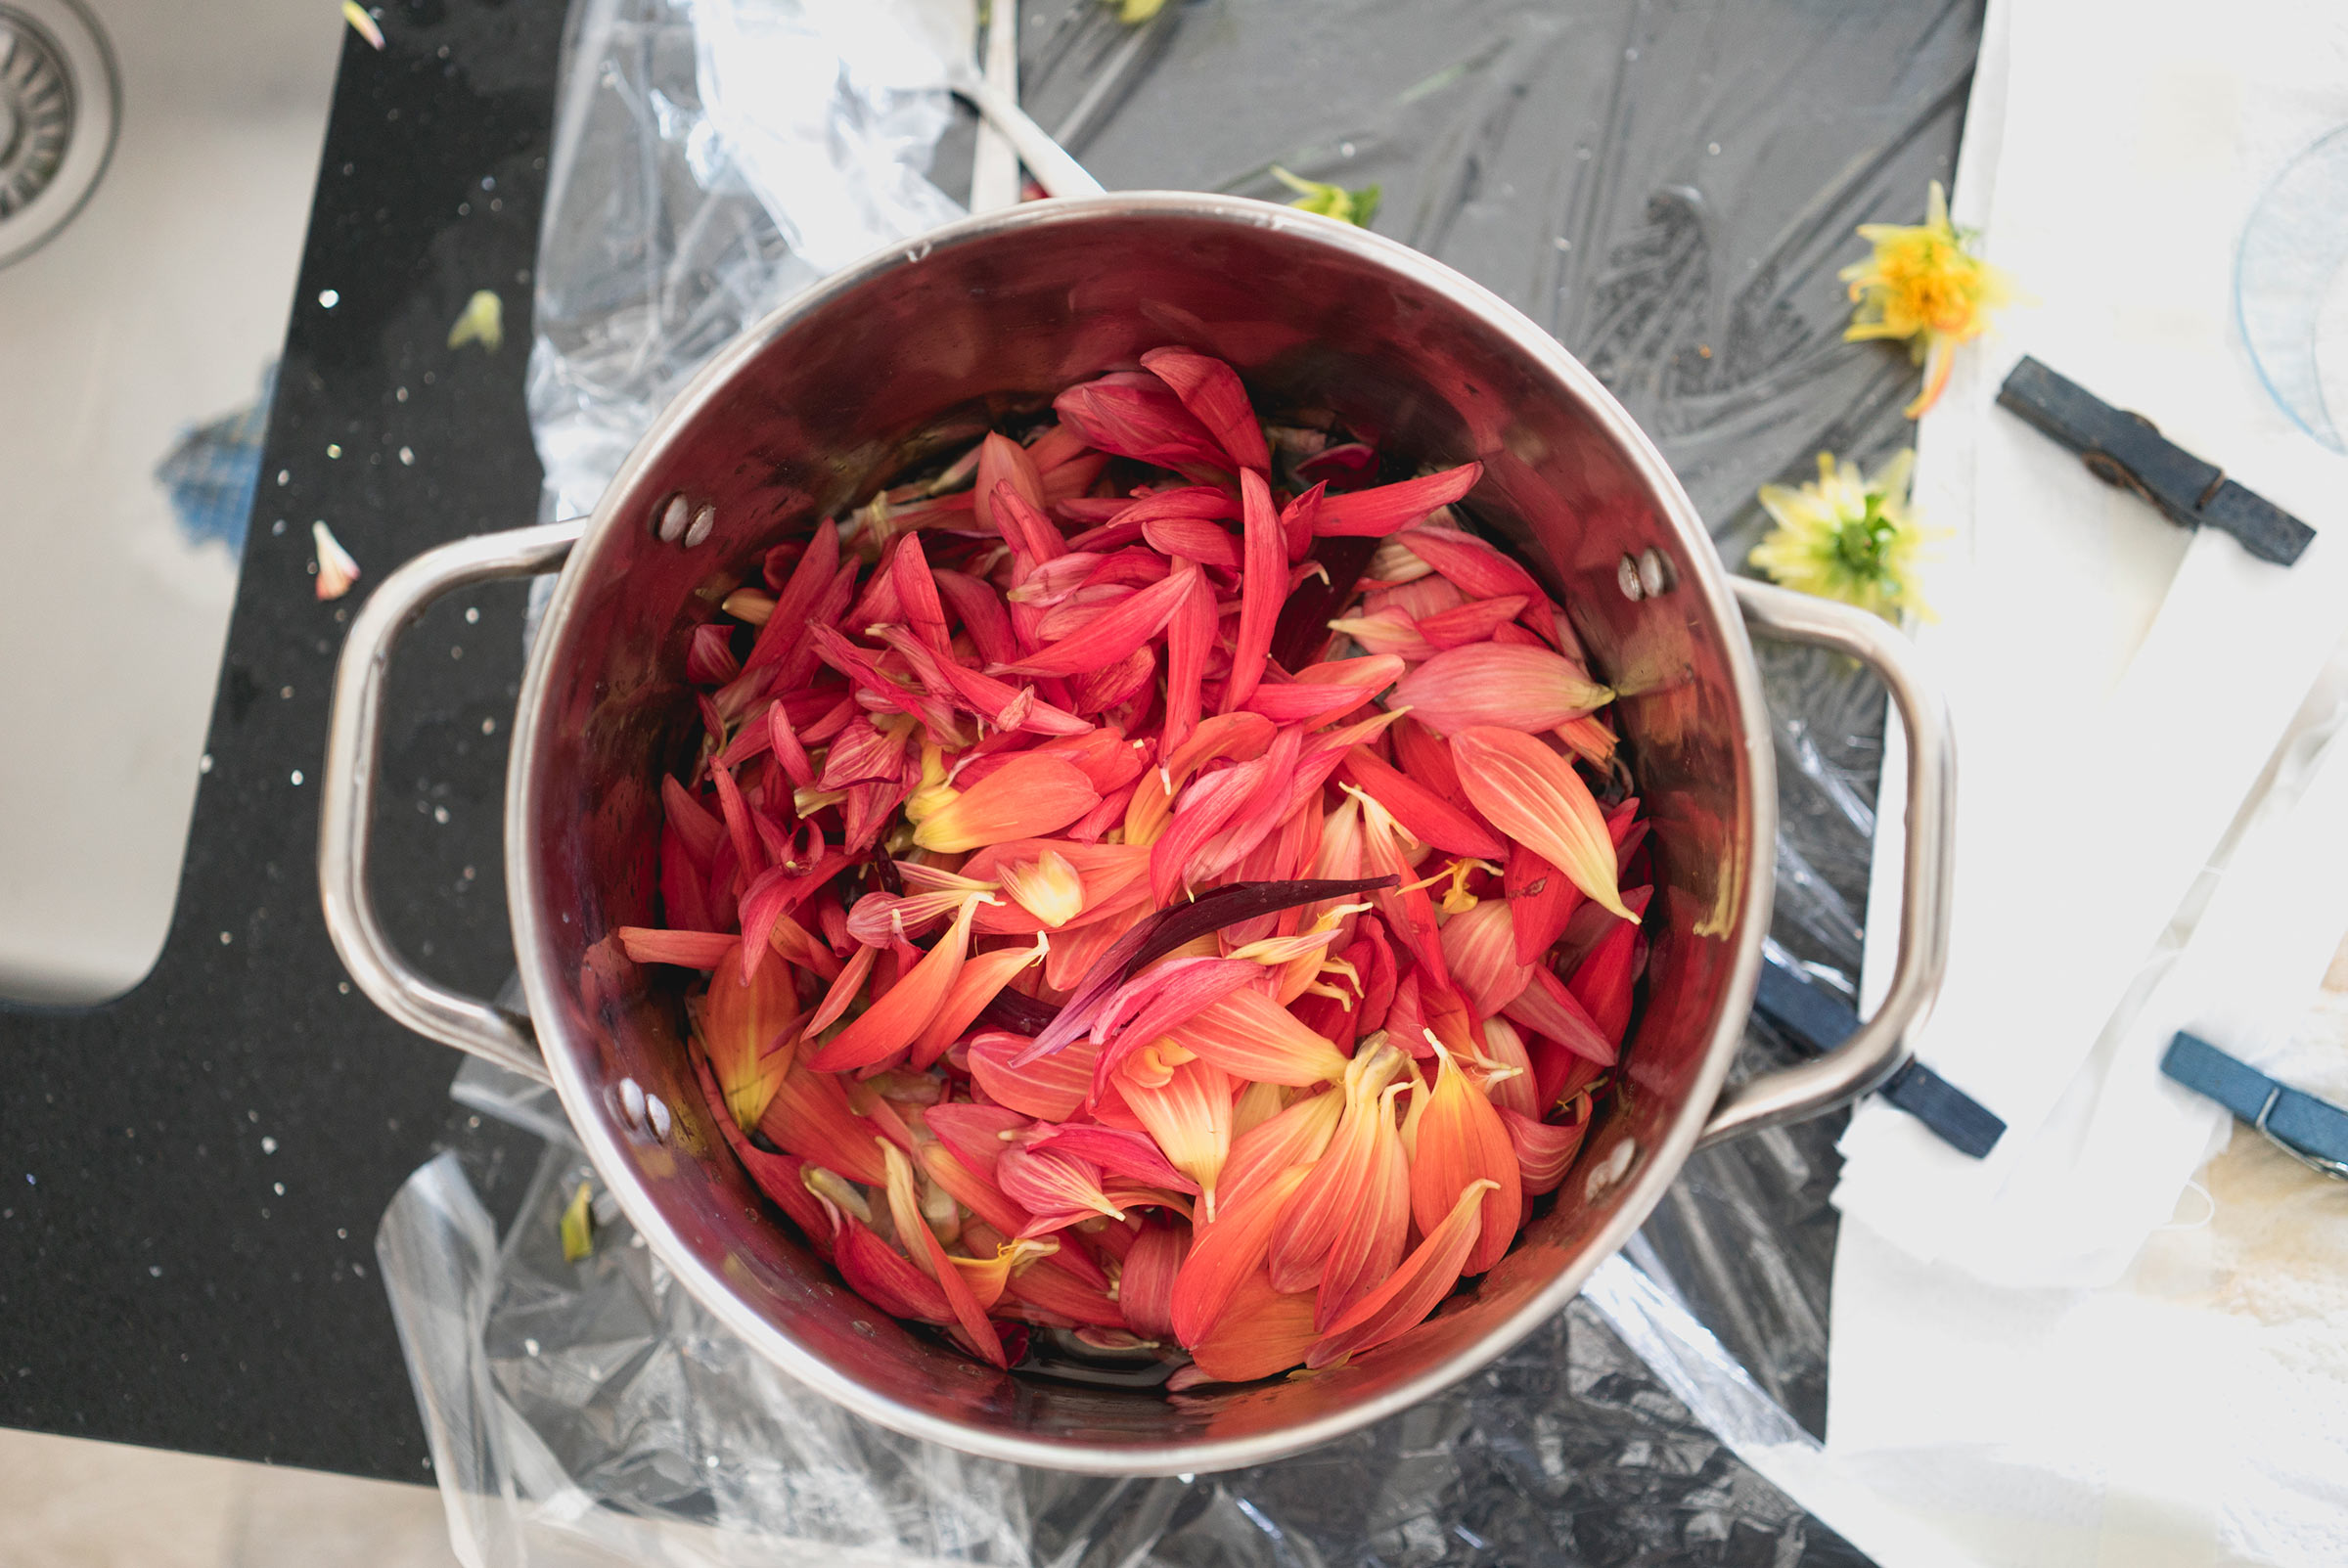 Teach Us made a dye bath using dahlias